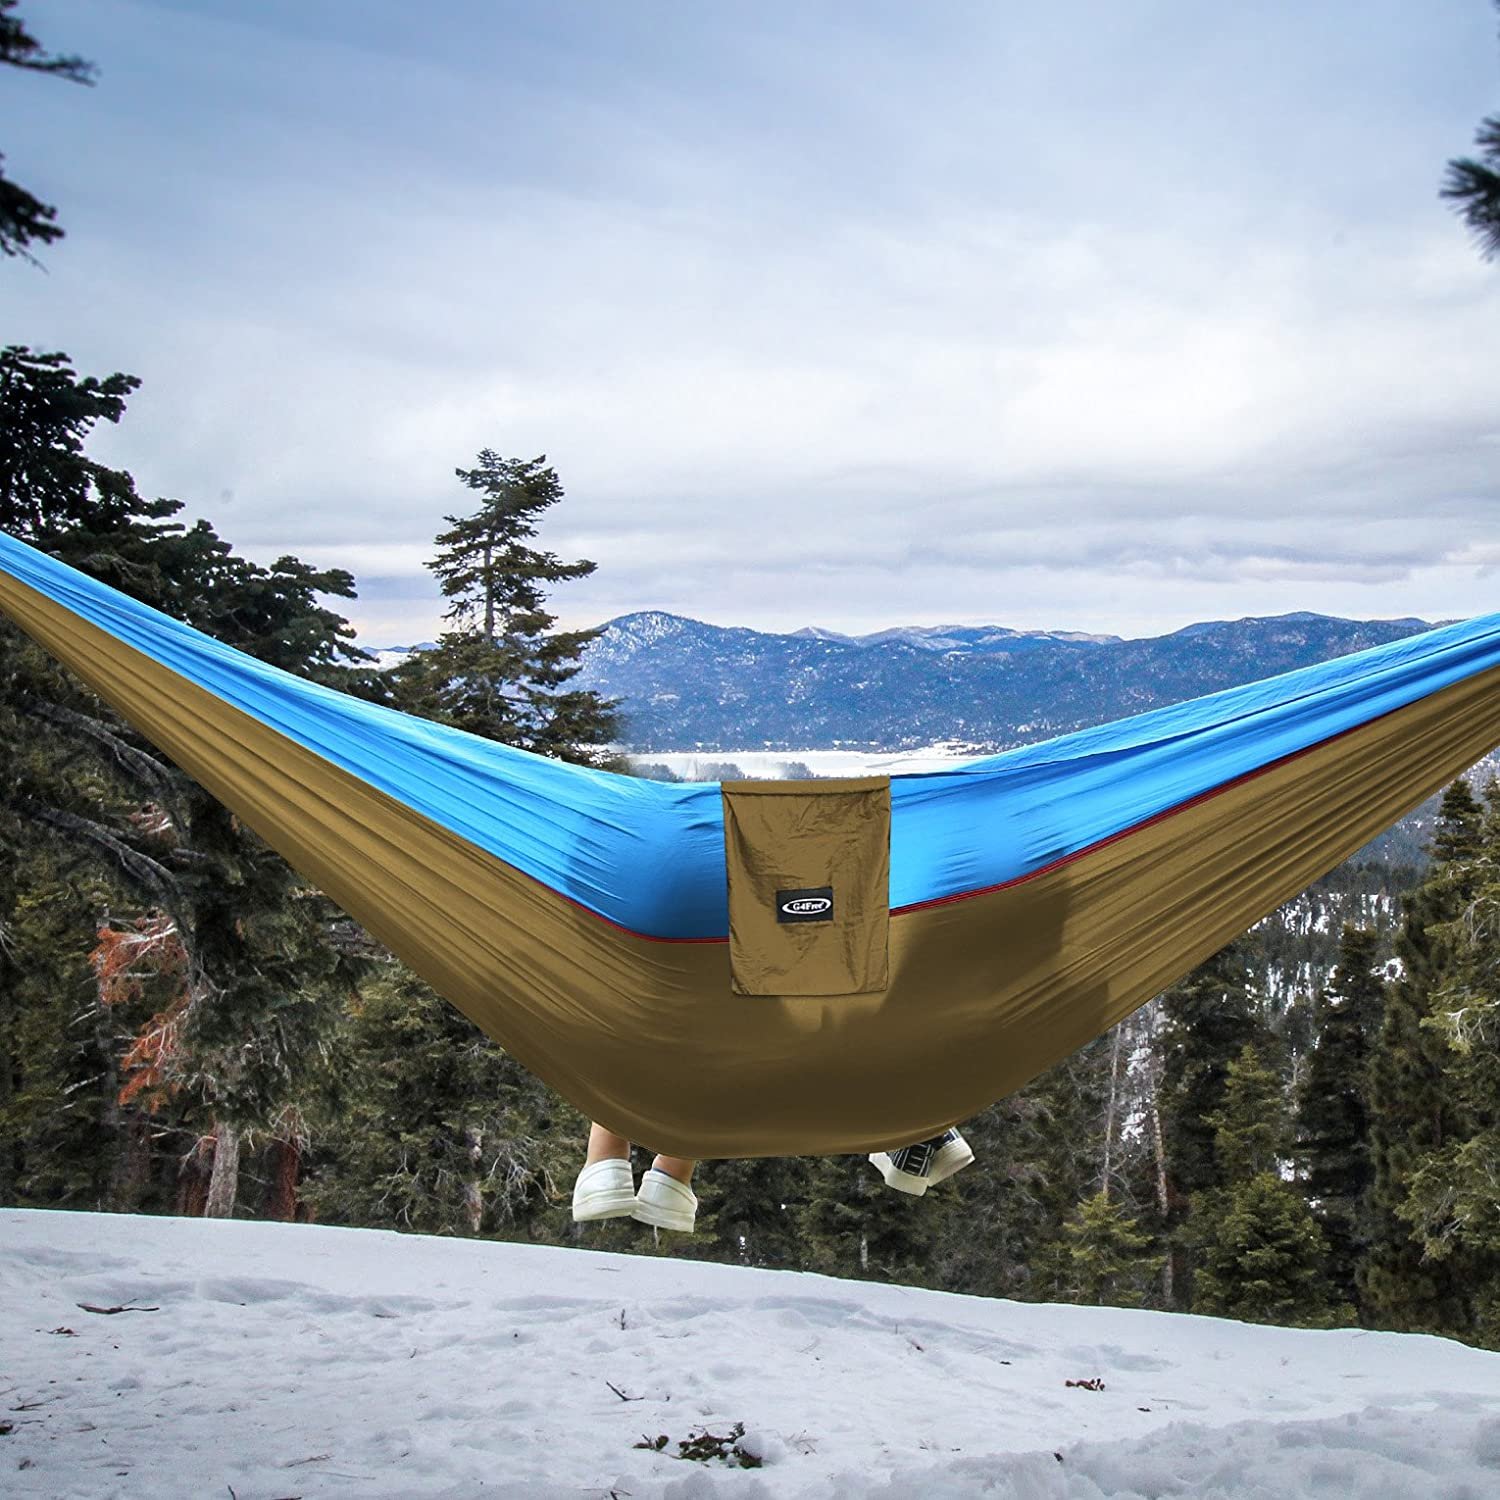 -with Carabiners /& Hammock Straps - Lightweight Portable Parachute Nylon 210T Camping Hammocks for Backpacking,Backyard 660lbs 2 Person 118x 75 G4Free Double Camping Hammock